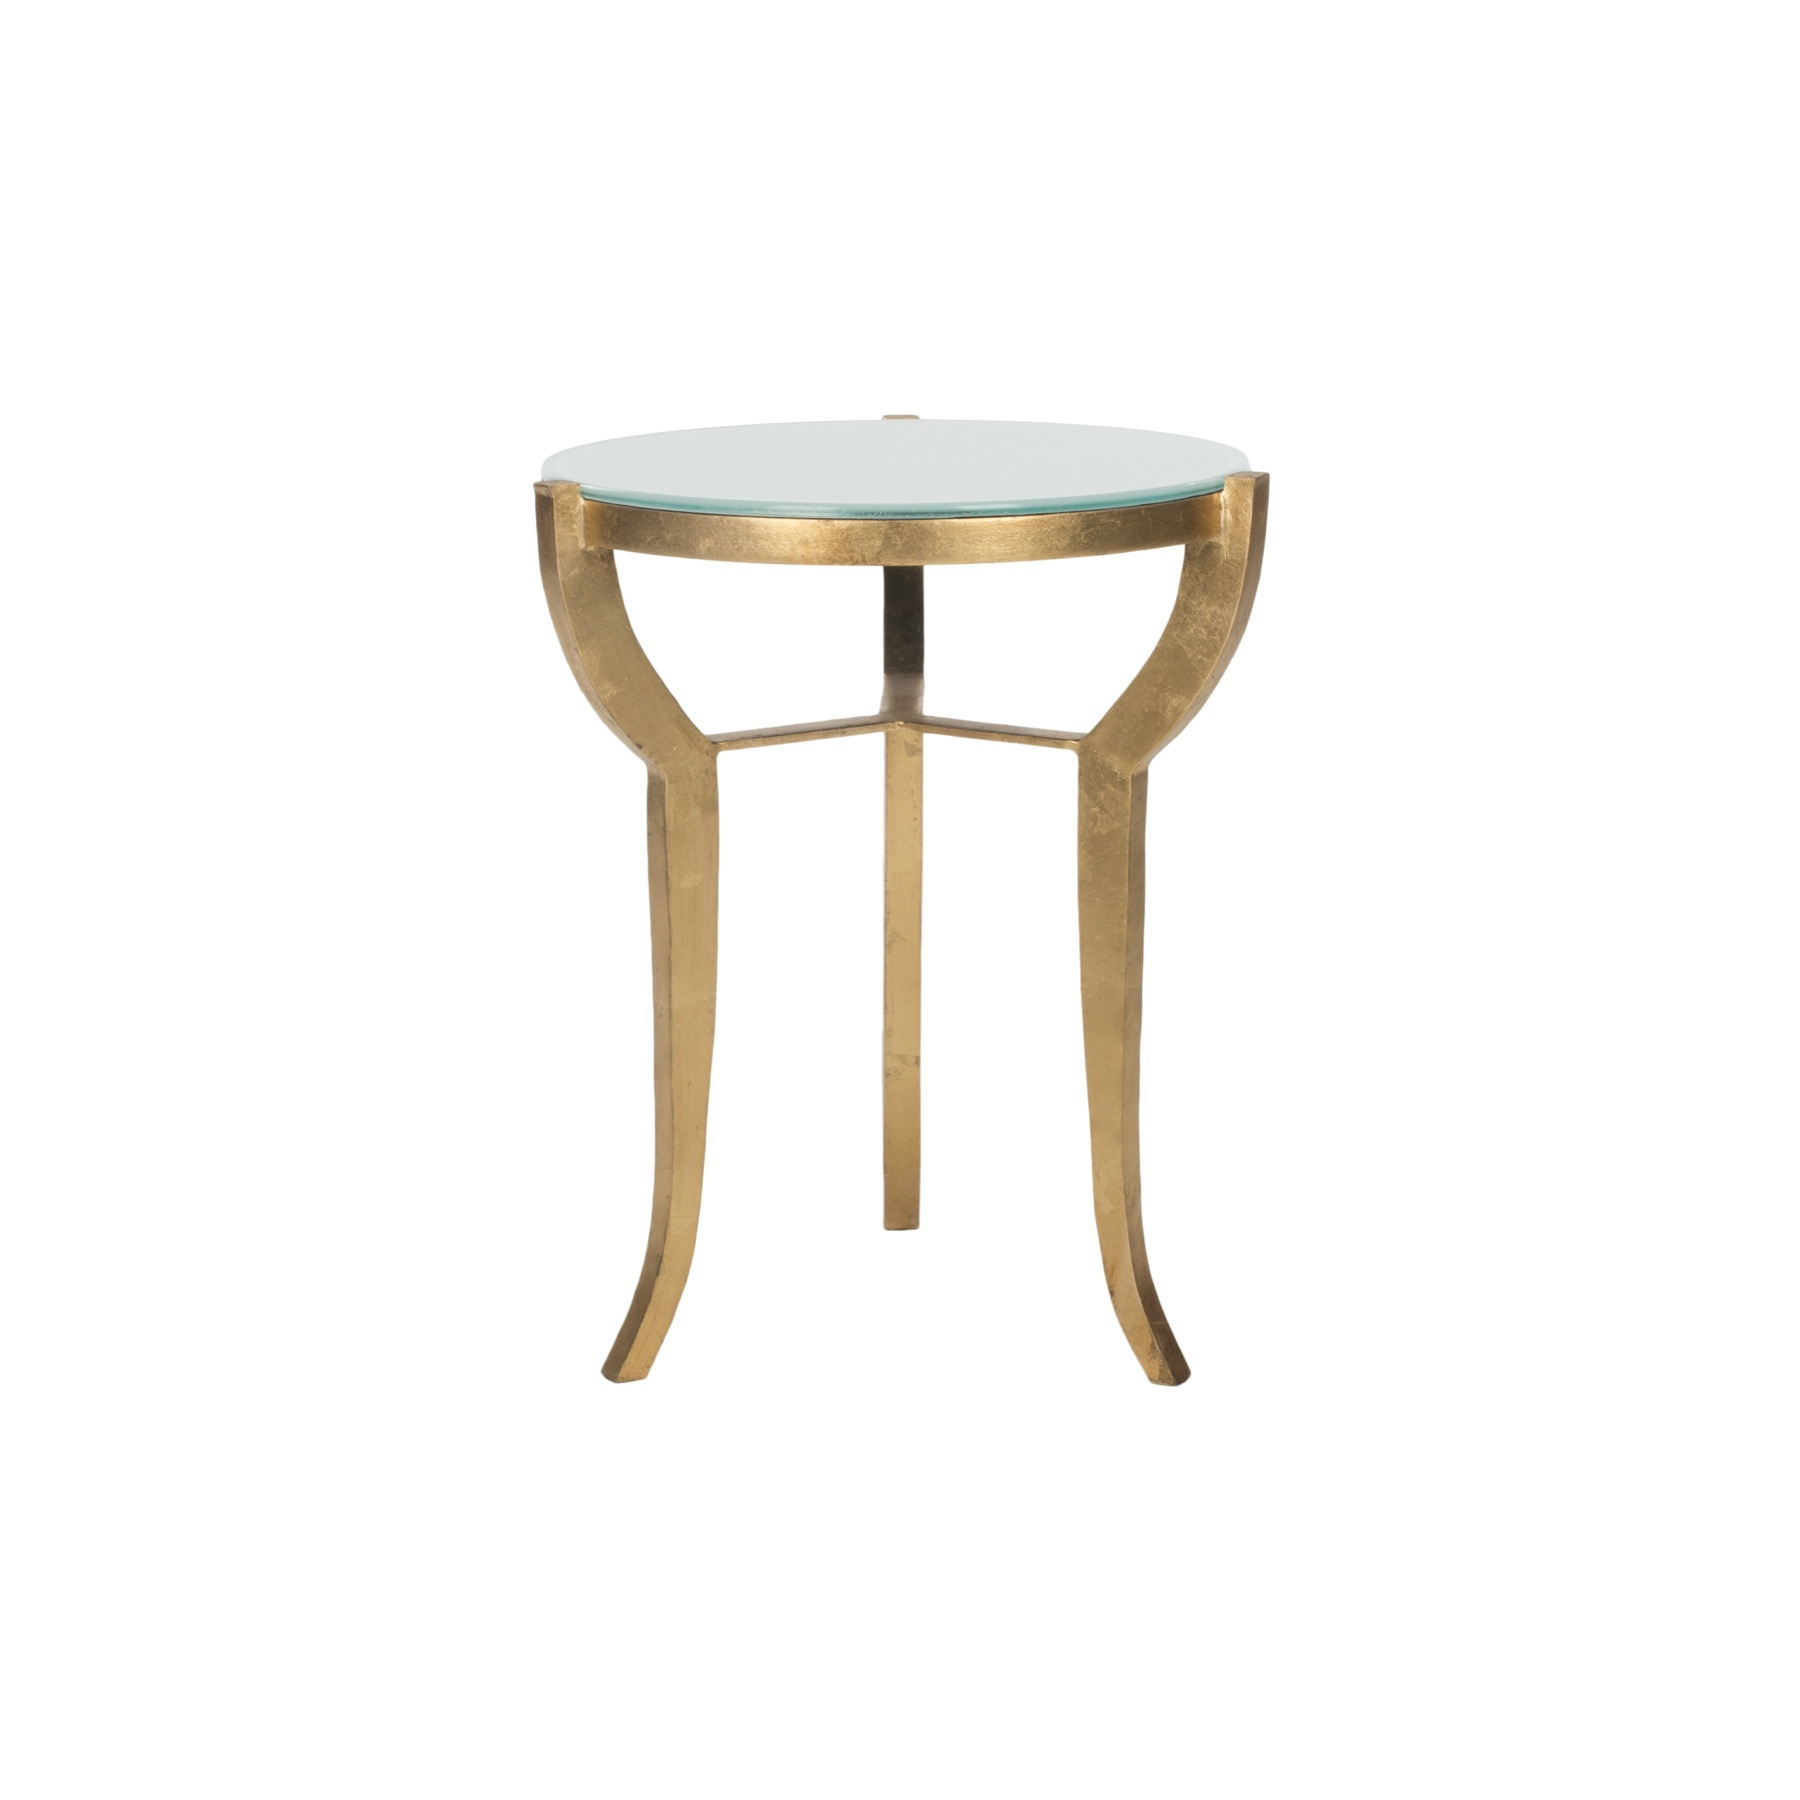 ormond mirror top circular accent table white glass glistening spin prod gold with legs hardwood floor tile small round silver side pink metal grey dining set mattress and box